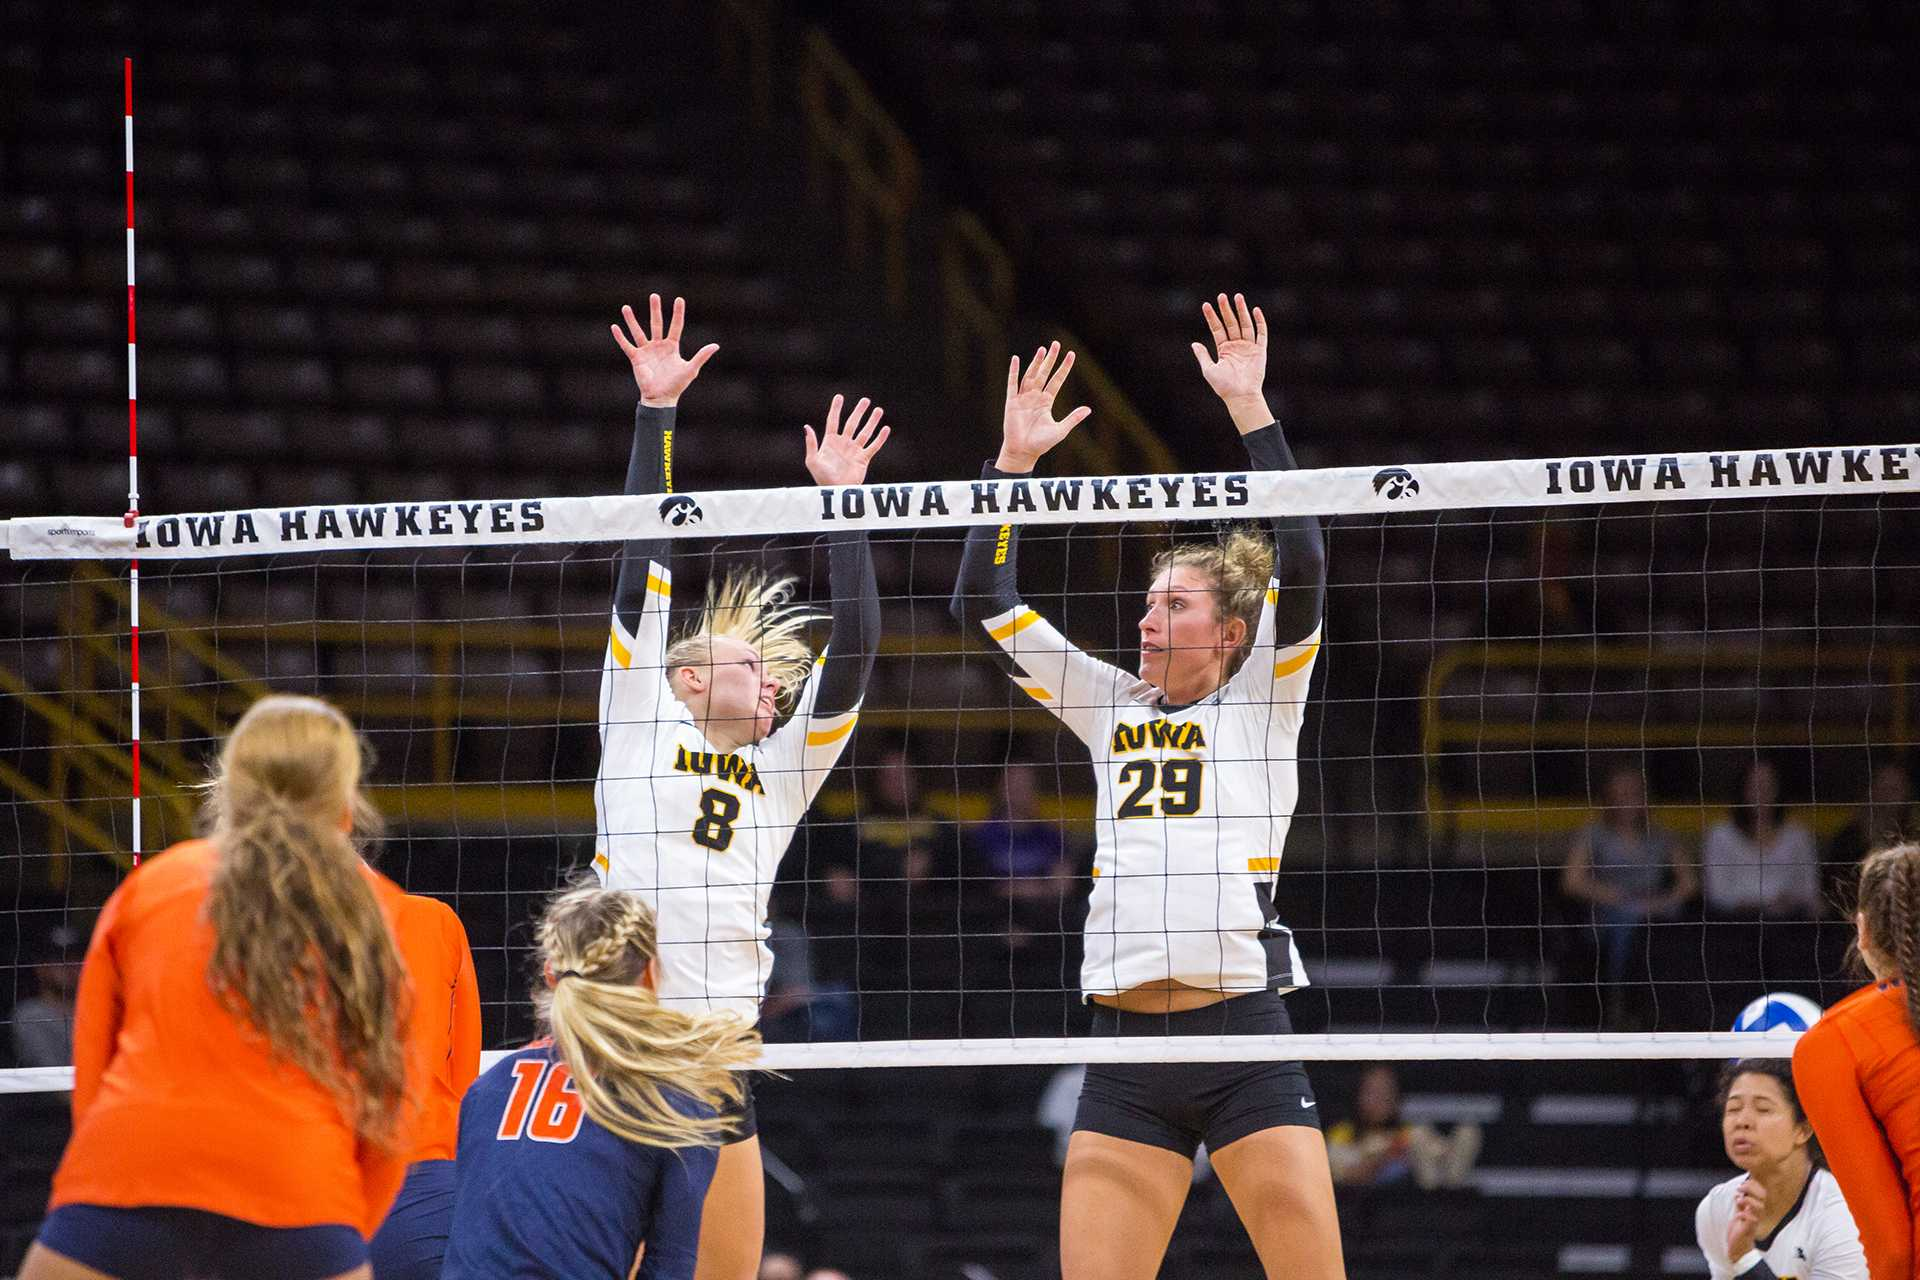 Iowa Hawkeye Volleyball players Jess Janota and Reghan Coyle try to defend the net during a match against the University of Illinois Fighting Illini on Friday, Oct. 19, 2017. The Illini defeated the Hawkeyes three sets to two.